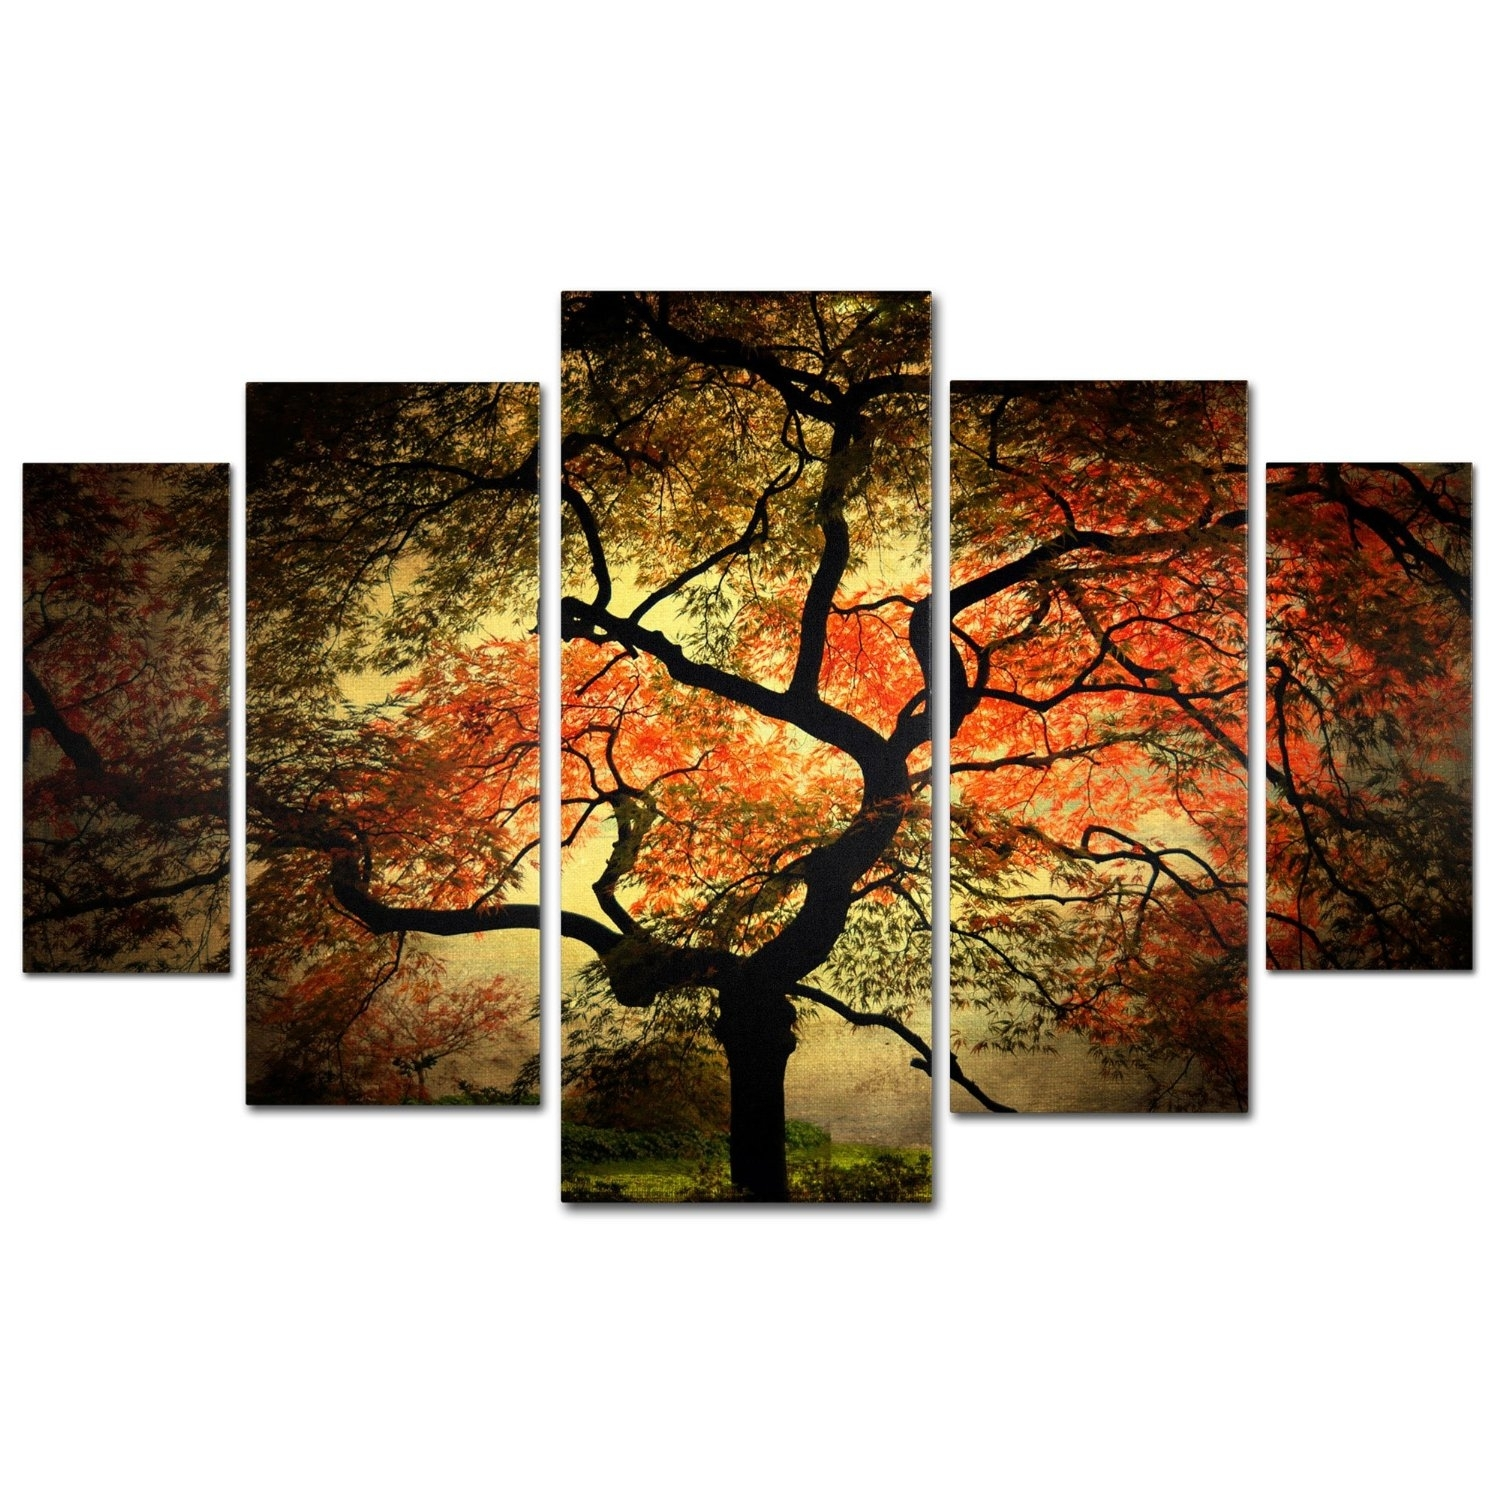 Wall Art Designs: Multi Panel Wall Art Pair Large Multi Panel Within Best And Newest Rustic Canvas Wall Art (Gallery 6 of 15)